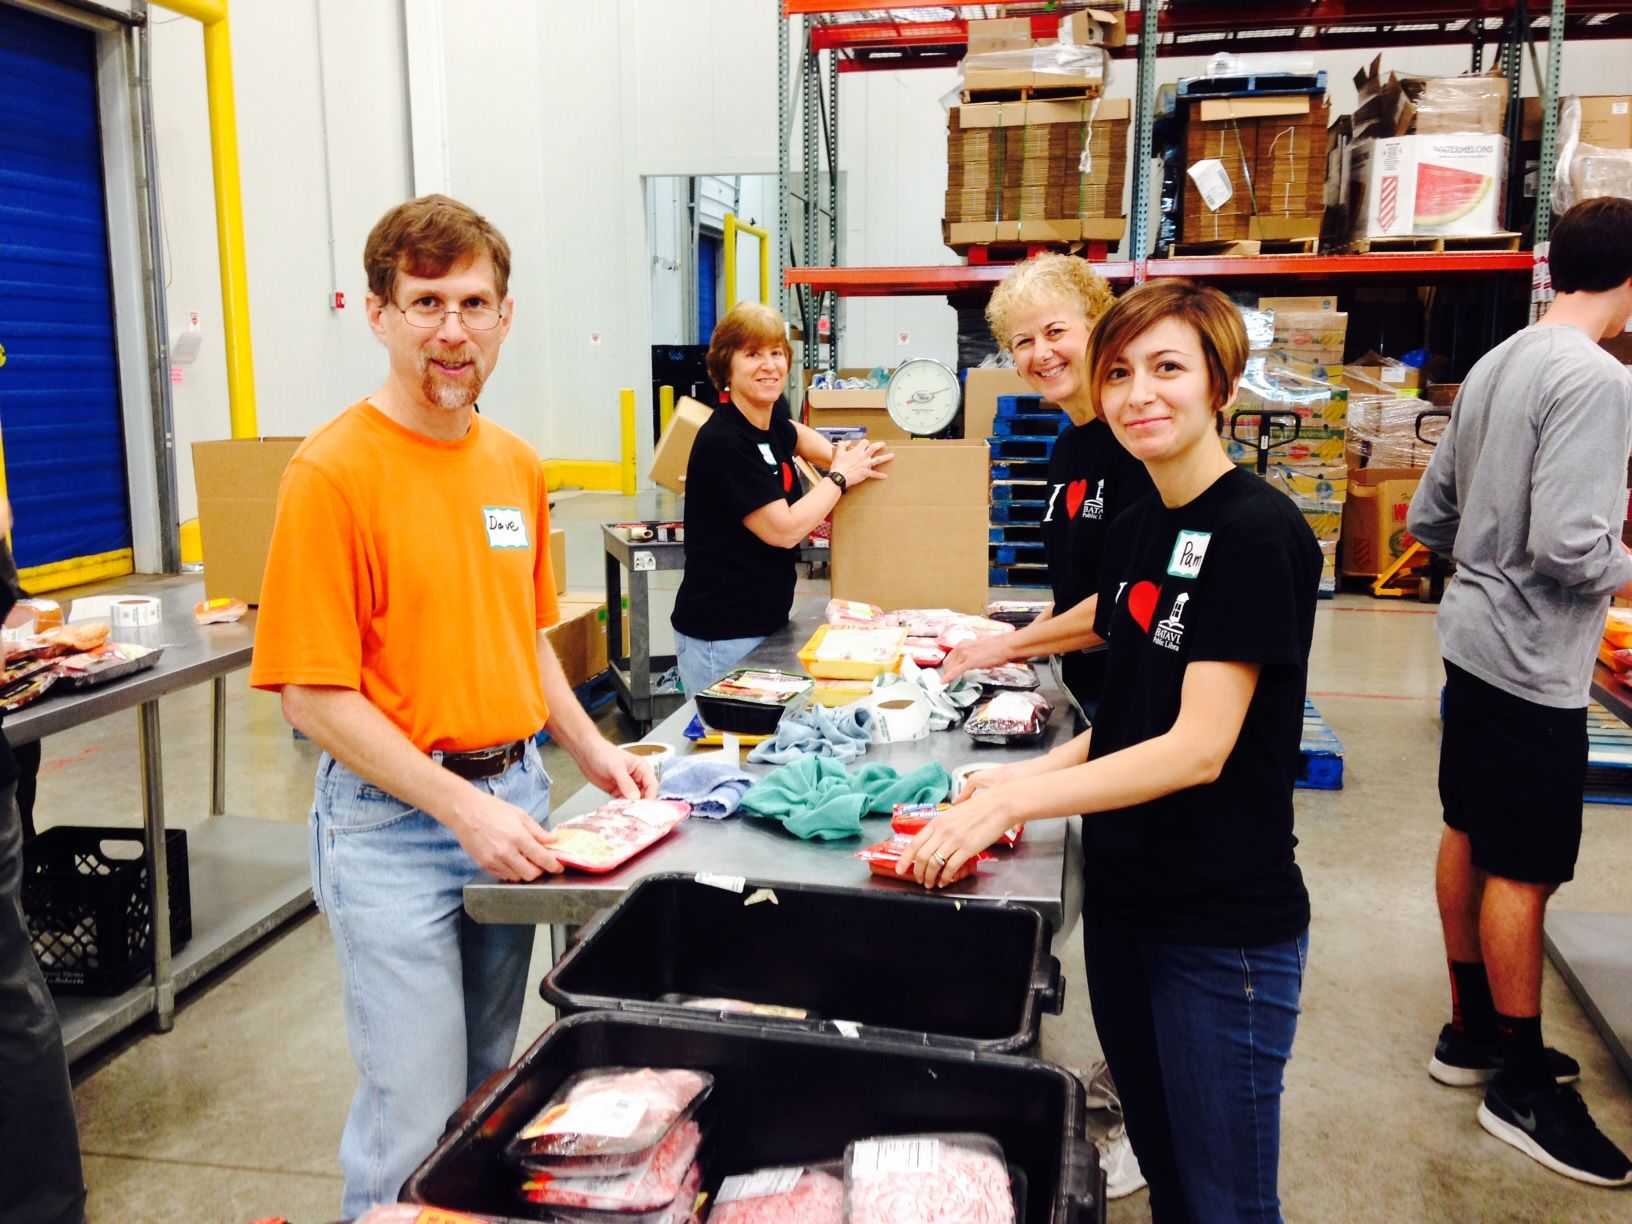 Cindy, Mary, Pam, and Cindy's husband, Dave at the Food Bank